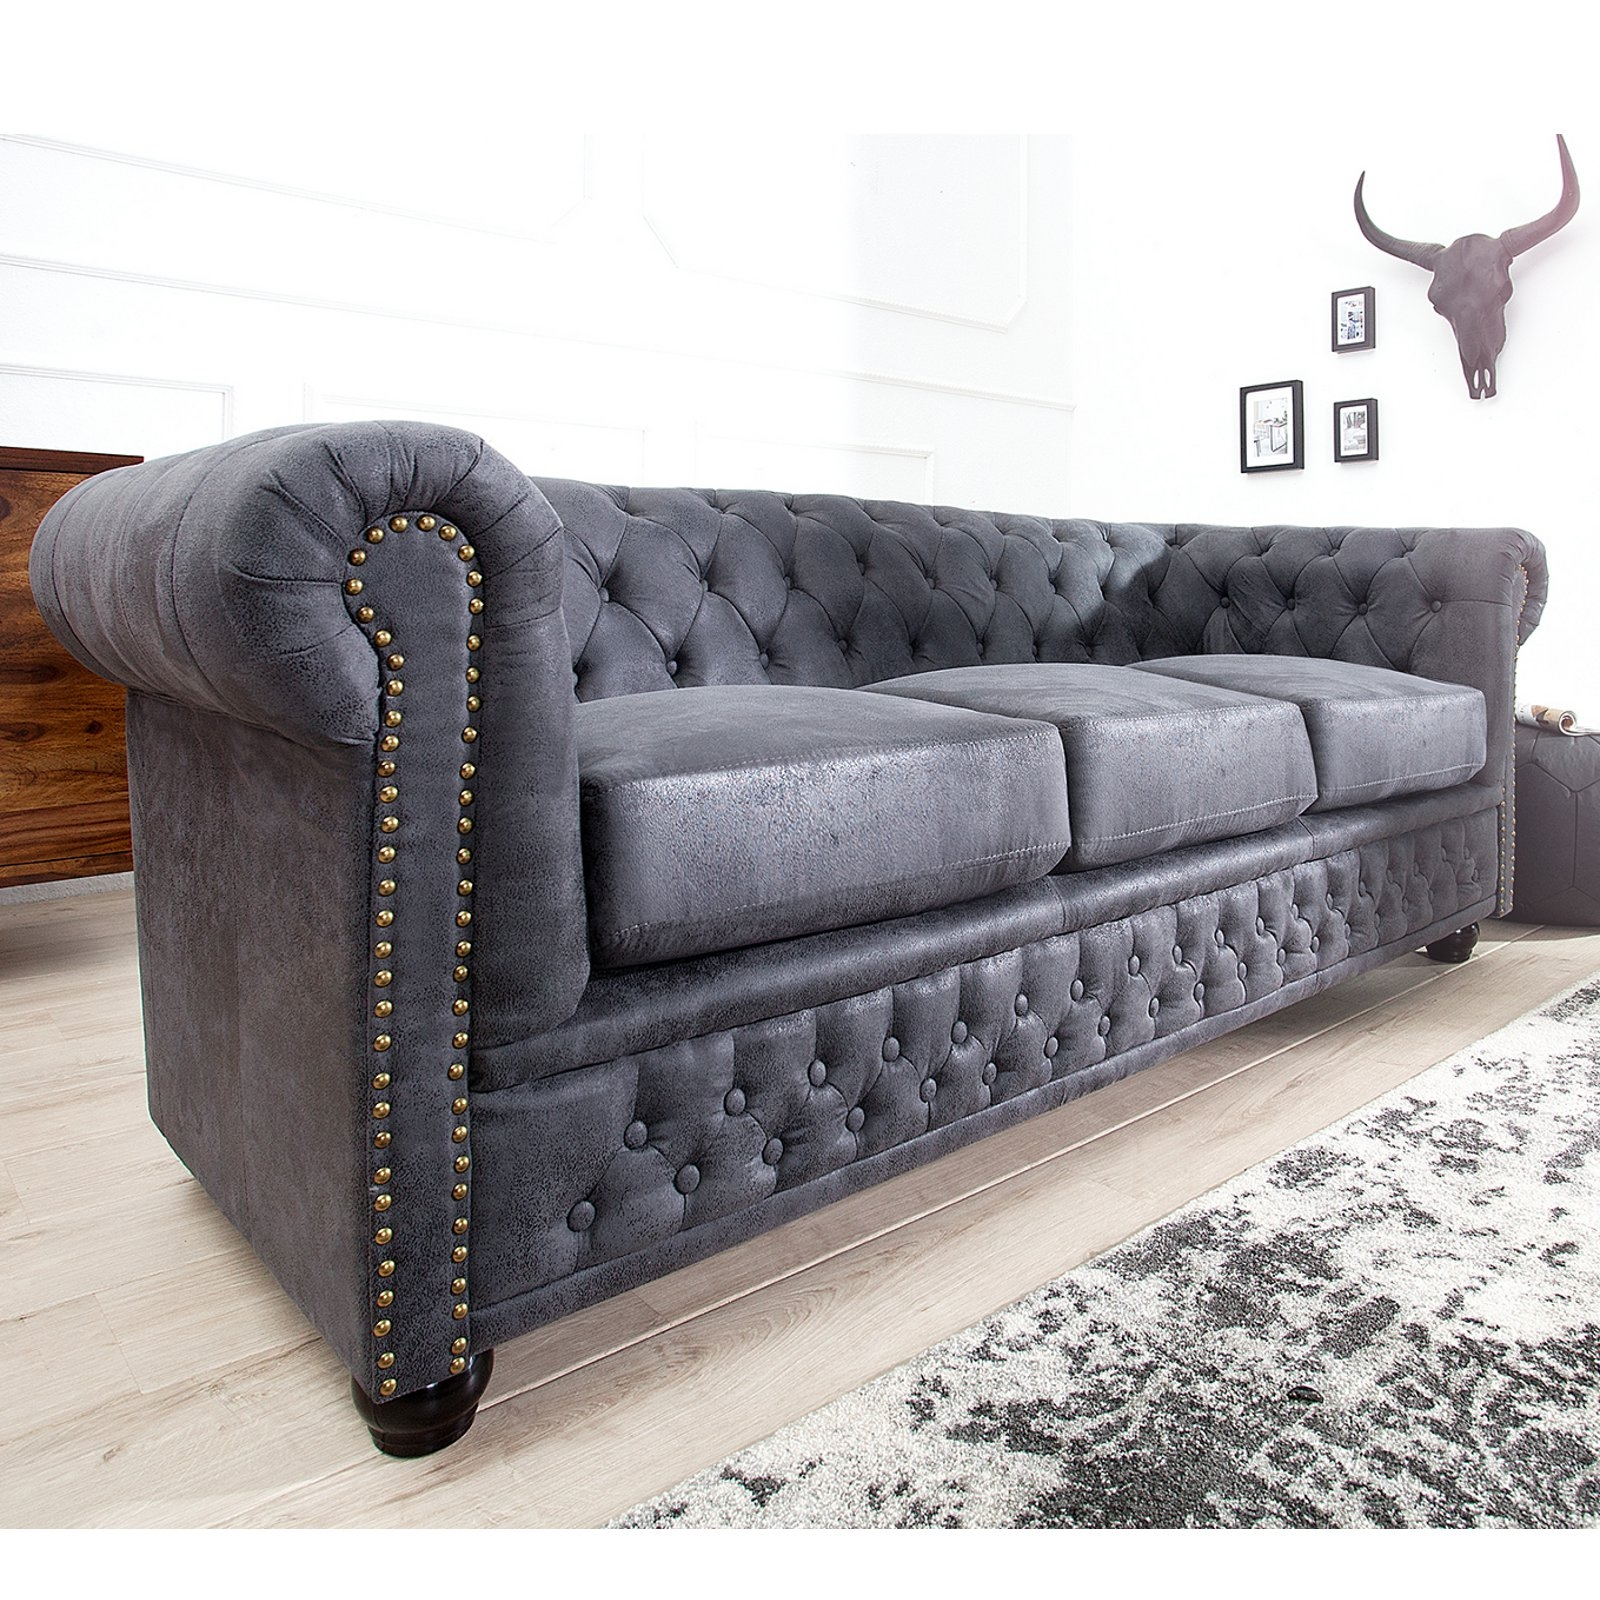 design chesterfield sofa manchester 200x70x85 cm. Black Bedroom Furniture Sets. Home Design Ideas